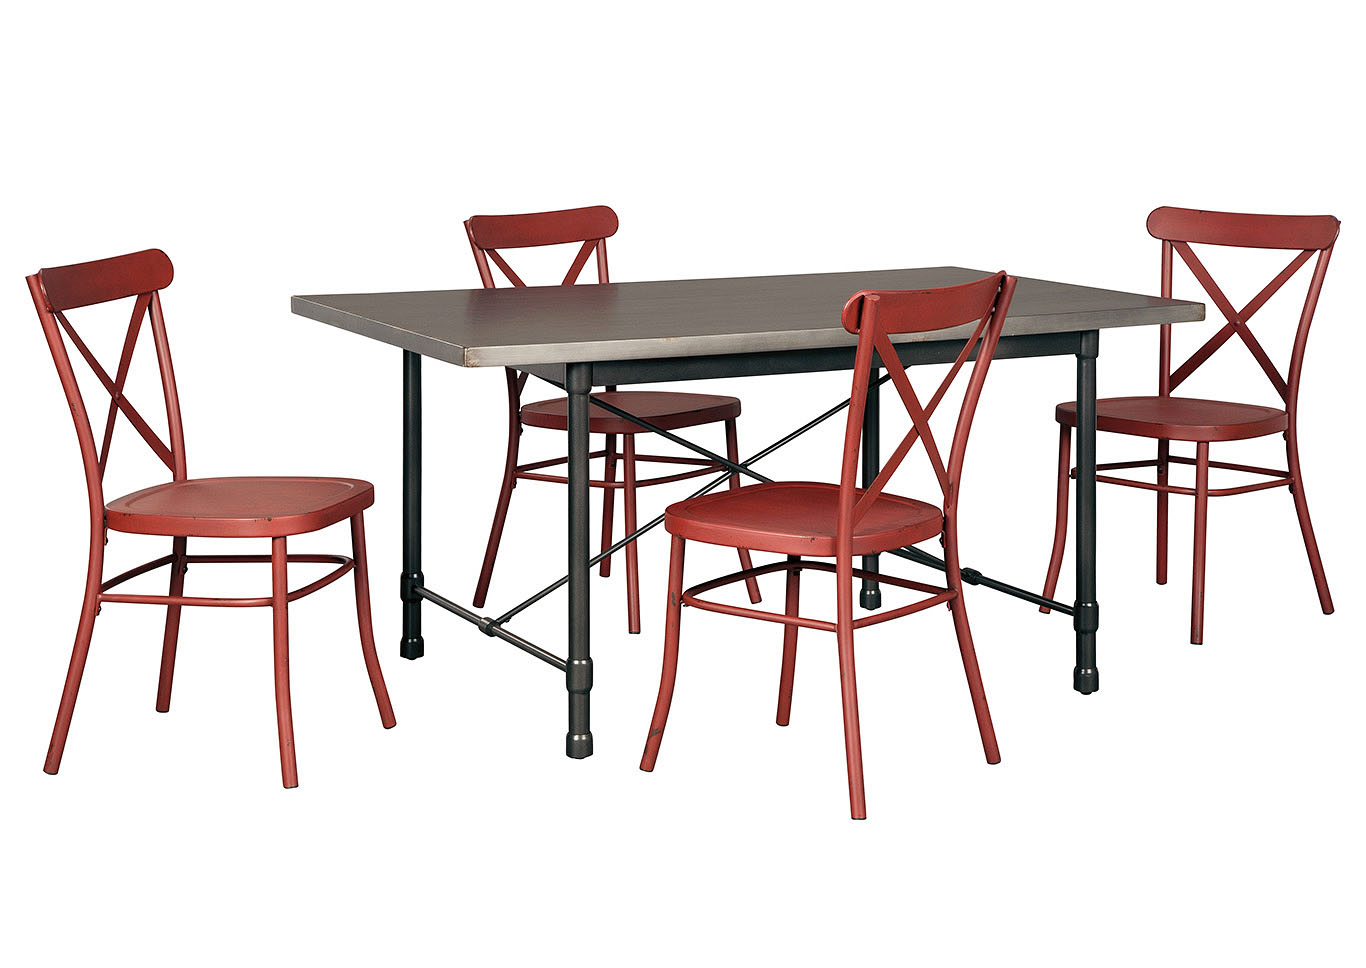 Minnona Aged Steel Rectangular Dining Table w/4 Red Side Chairs,Signature Design By Ashley